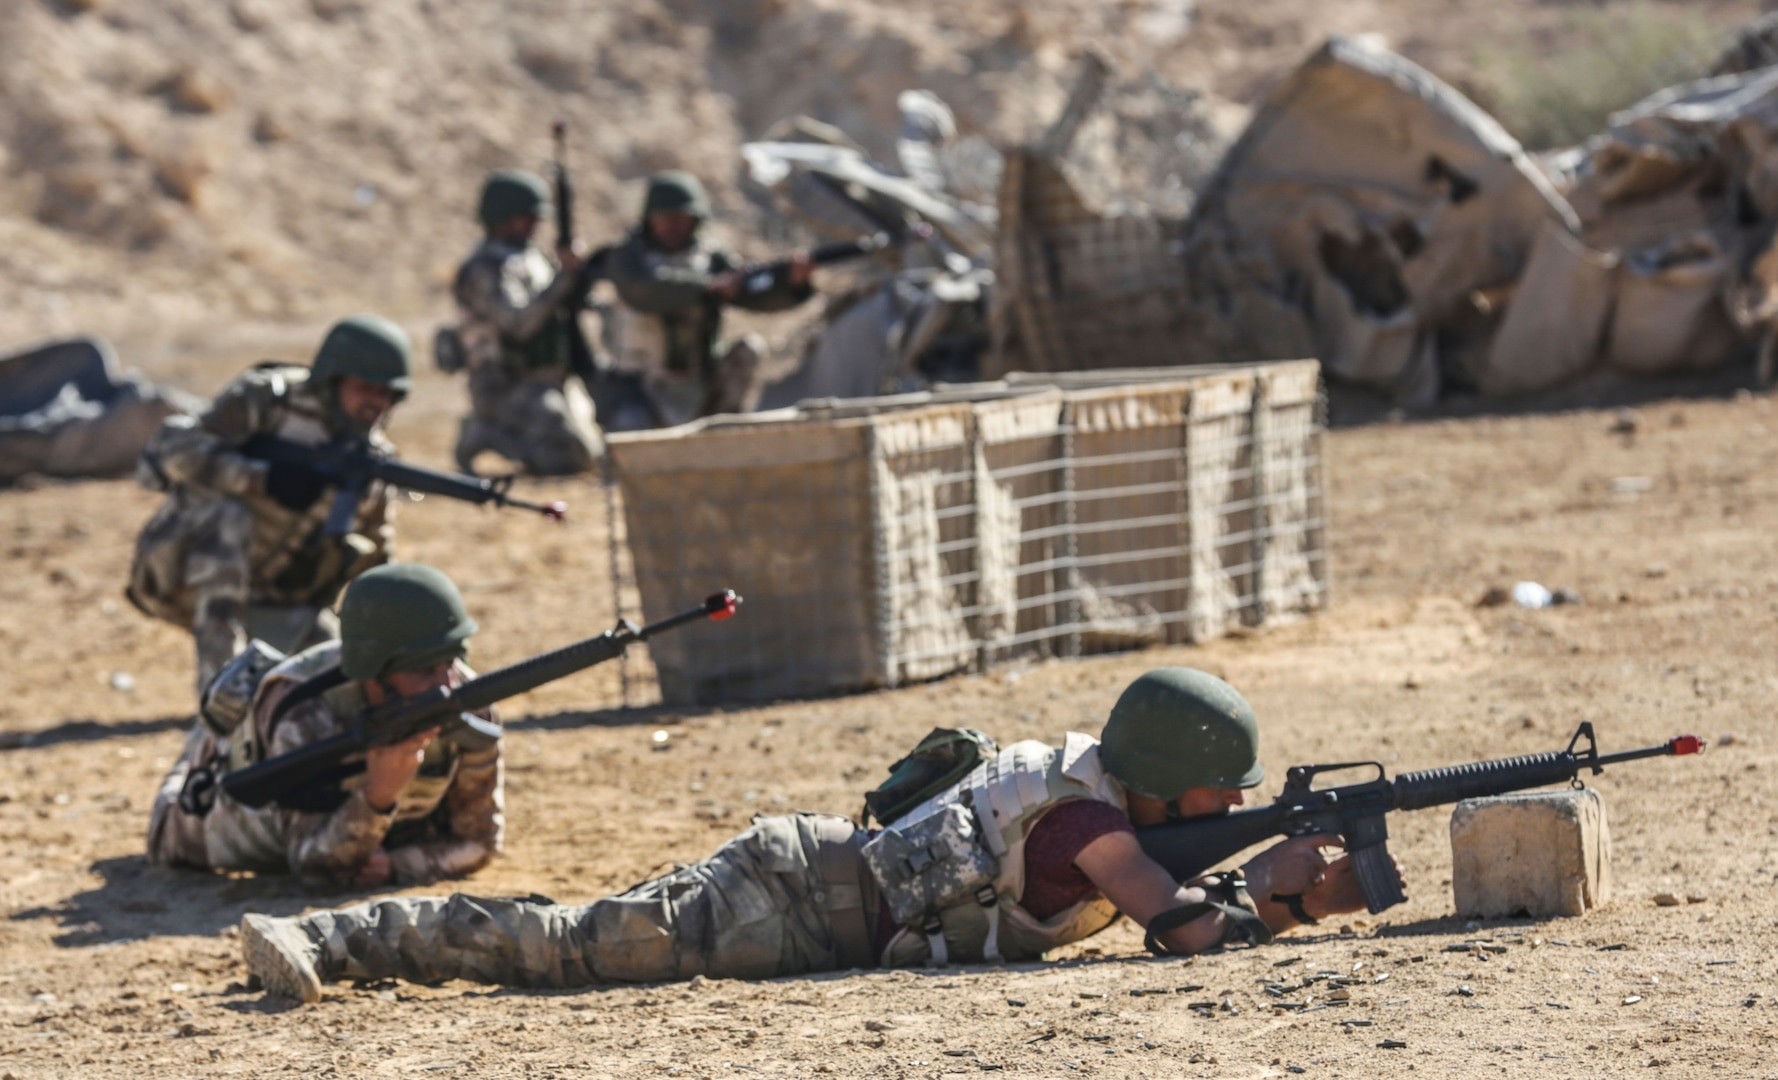 Iraqi security forces soldiers practice react to contact movements during training at Al Asad Air Base, Iraq, Feb. 1, 2017. Training at building partner capacity sites is an integral part of Combined Joint Task Force – Operation Inherent Resolve's effort to train ISF personnel.  CJTF-OIR is the global Coalition to defeat ISIL in Iraq and Syria.  (U.S. Army photo by Sgt. Lisa Soy)